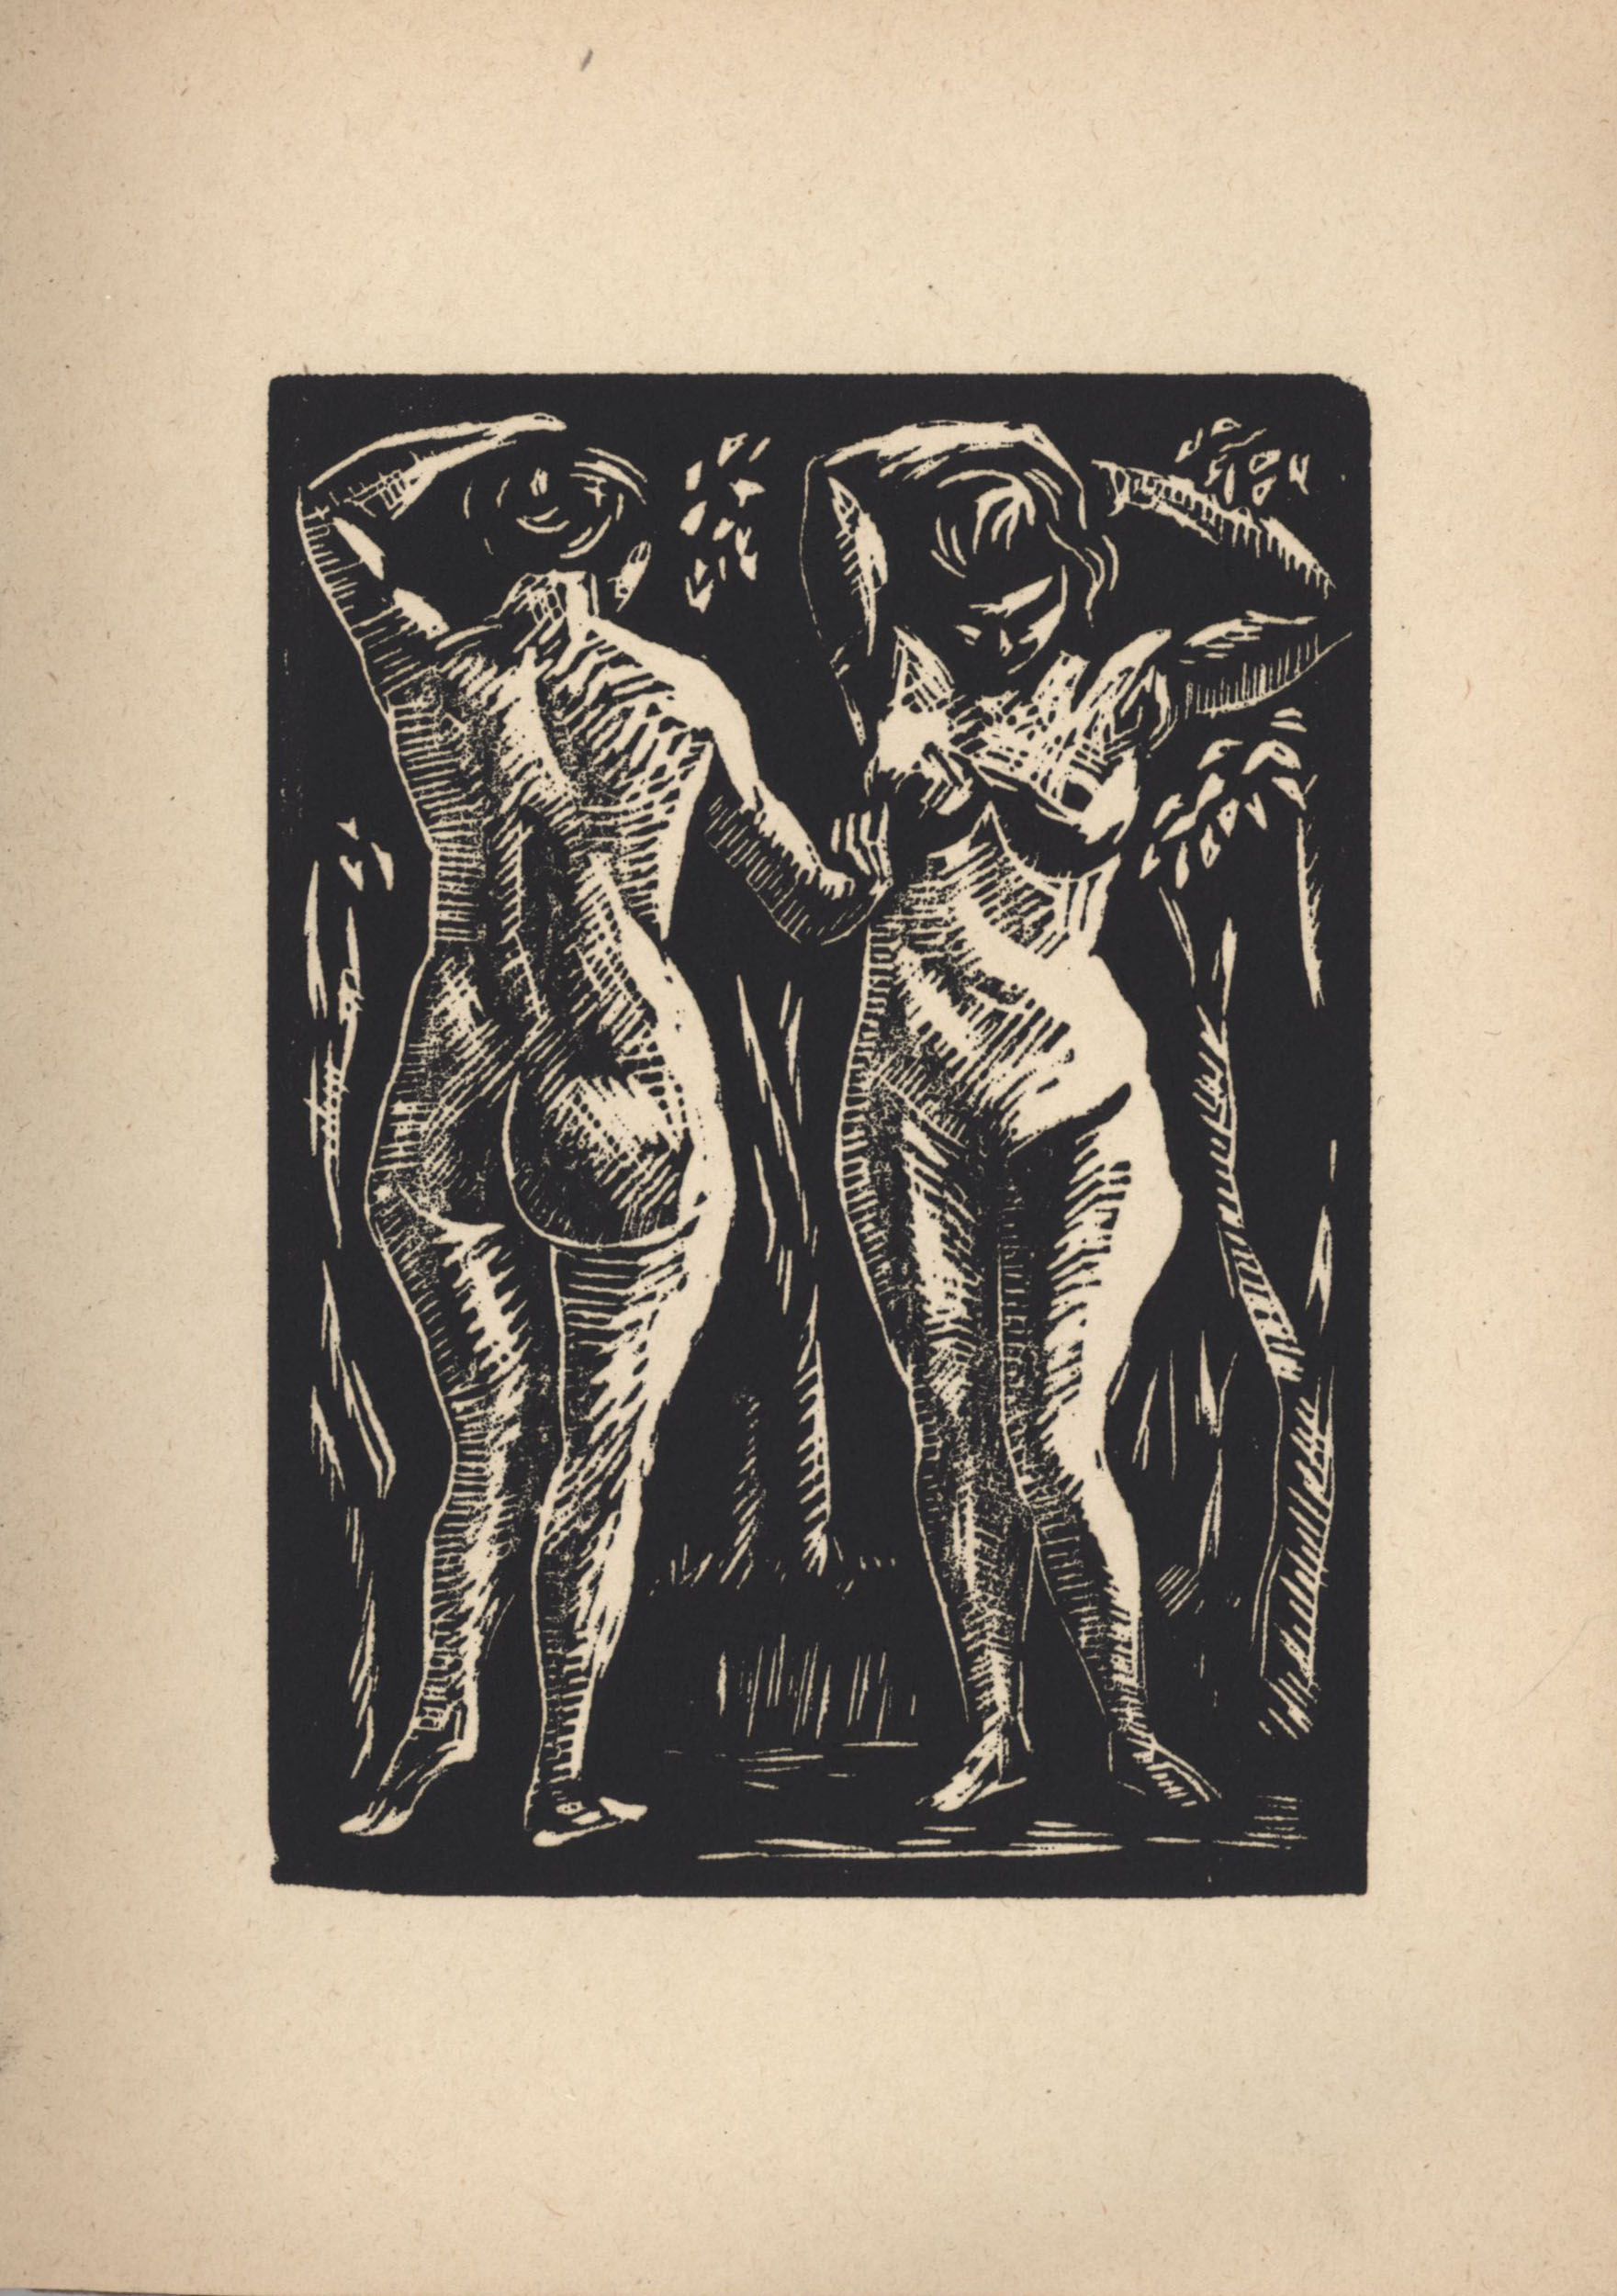 Ninth woodcut from Roger Fry's 'Twelve Original Woodcuts'.